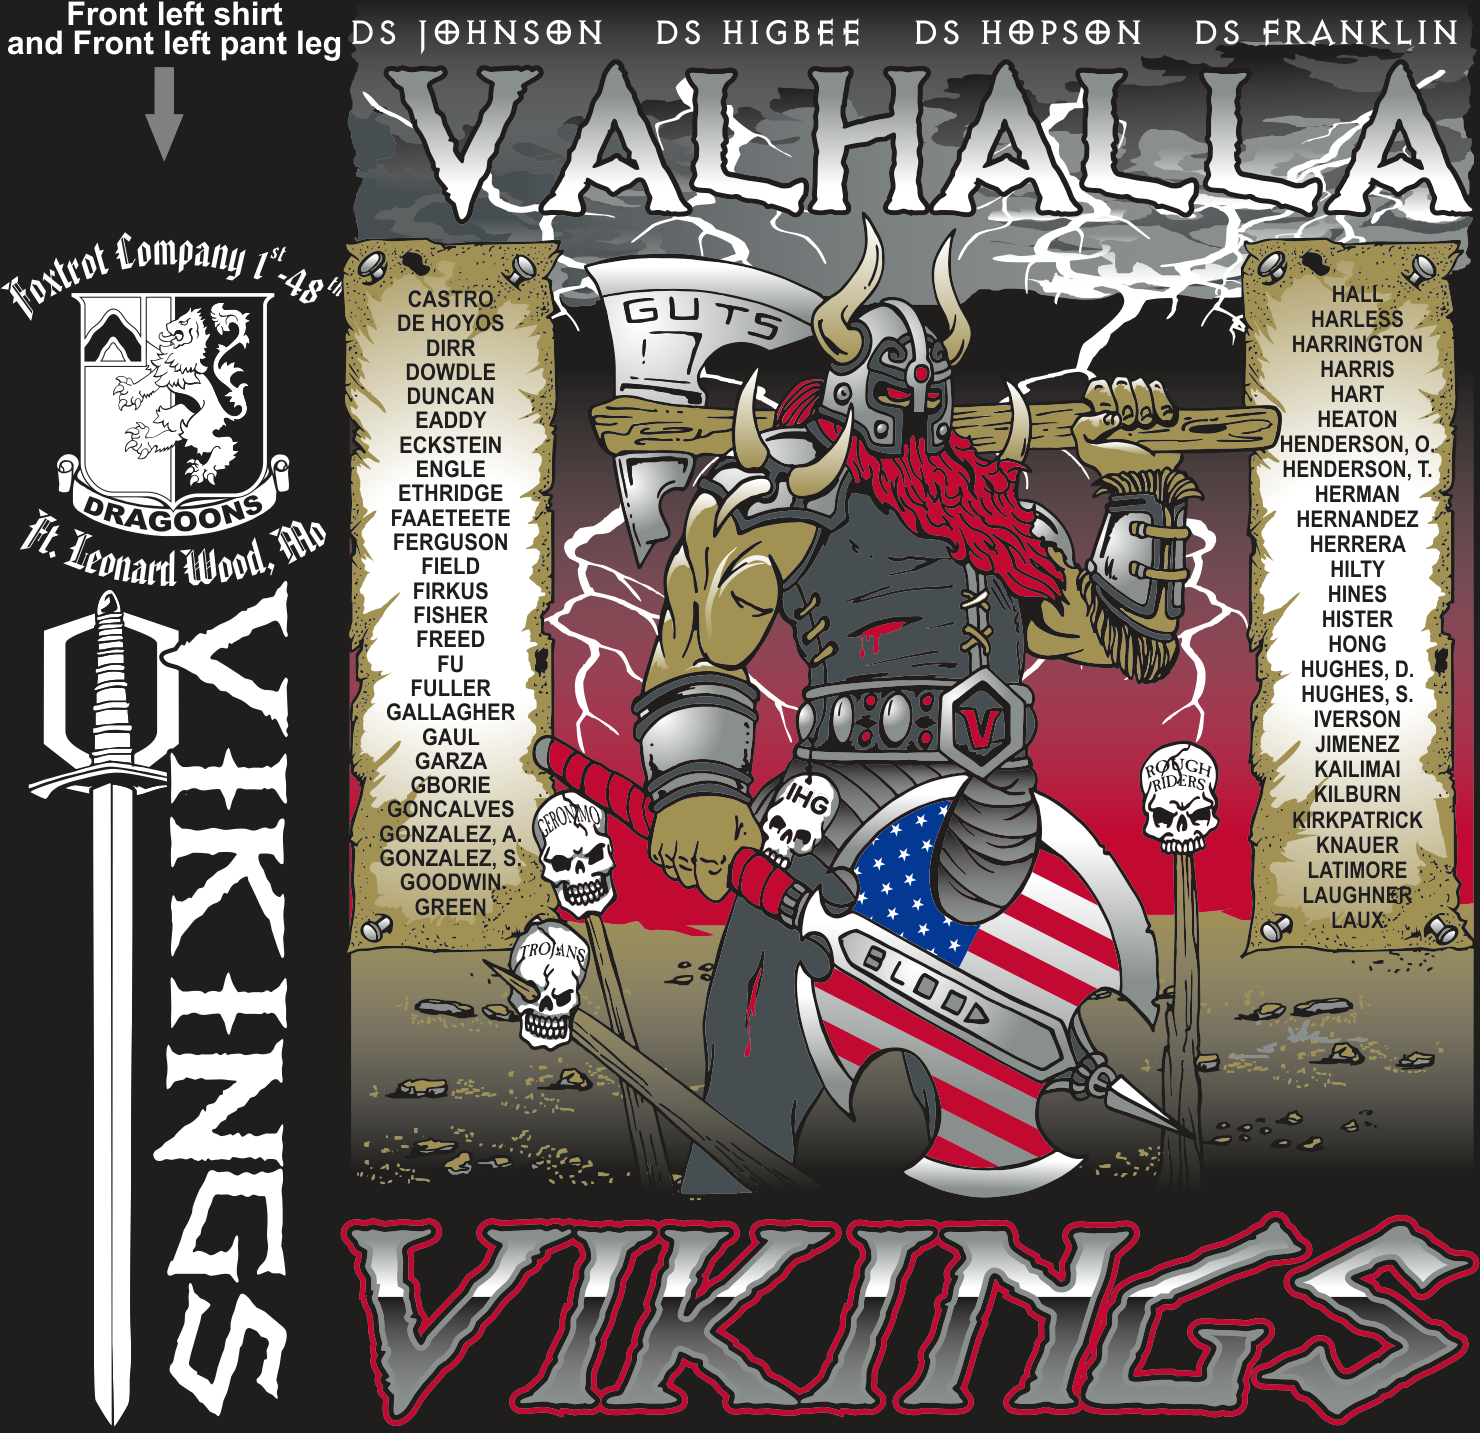 FOX 1-48 VIKINGS GRADUATING DAY 8-25-2016 digital